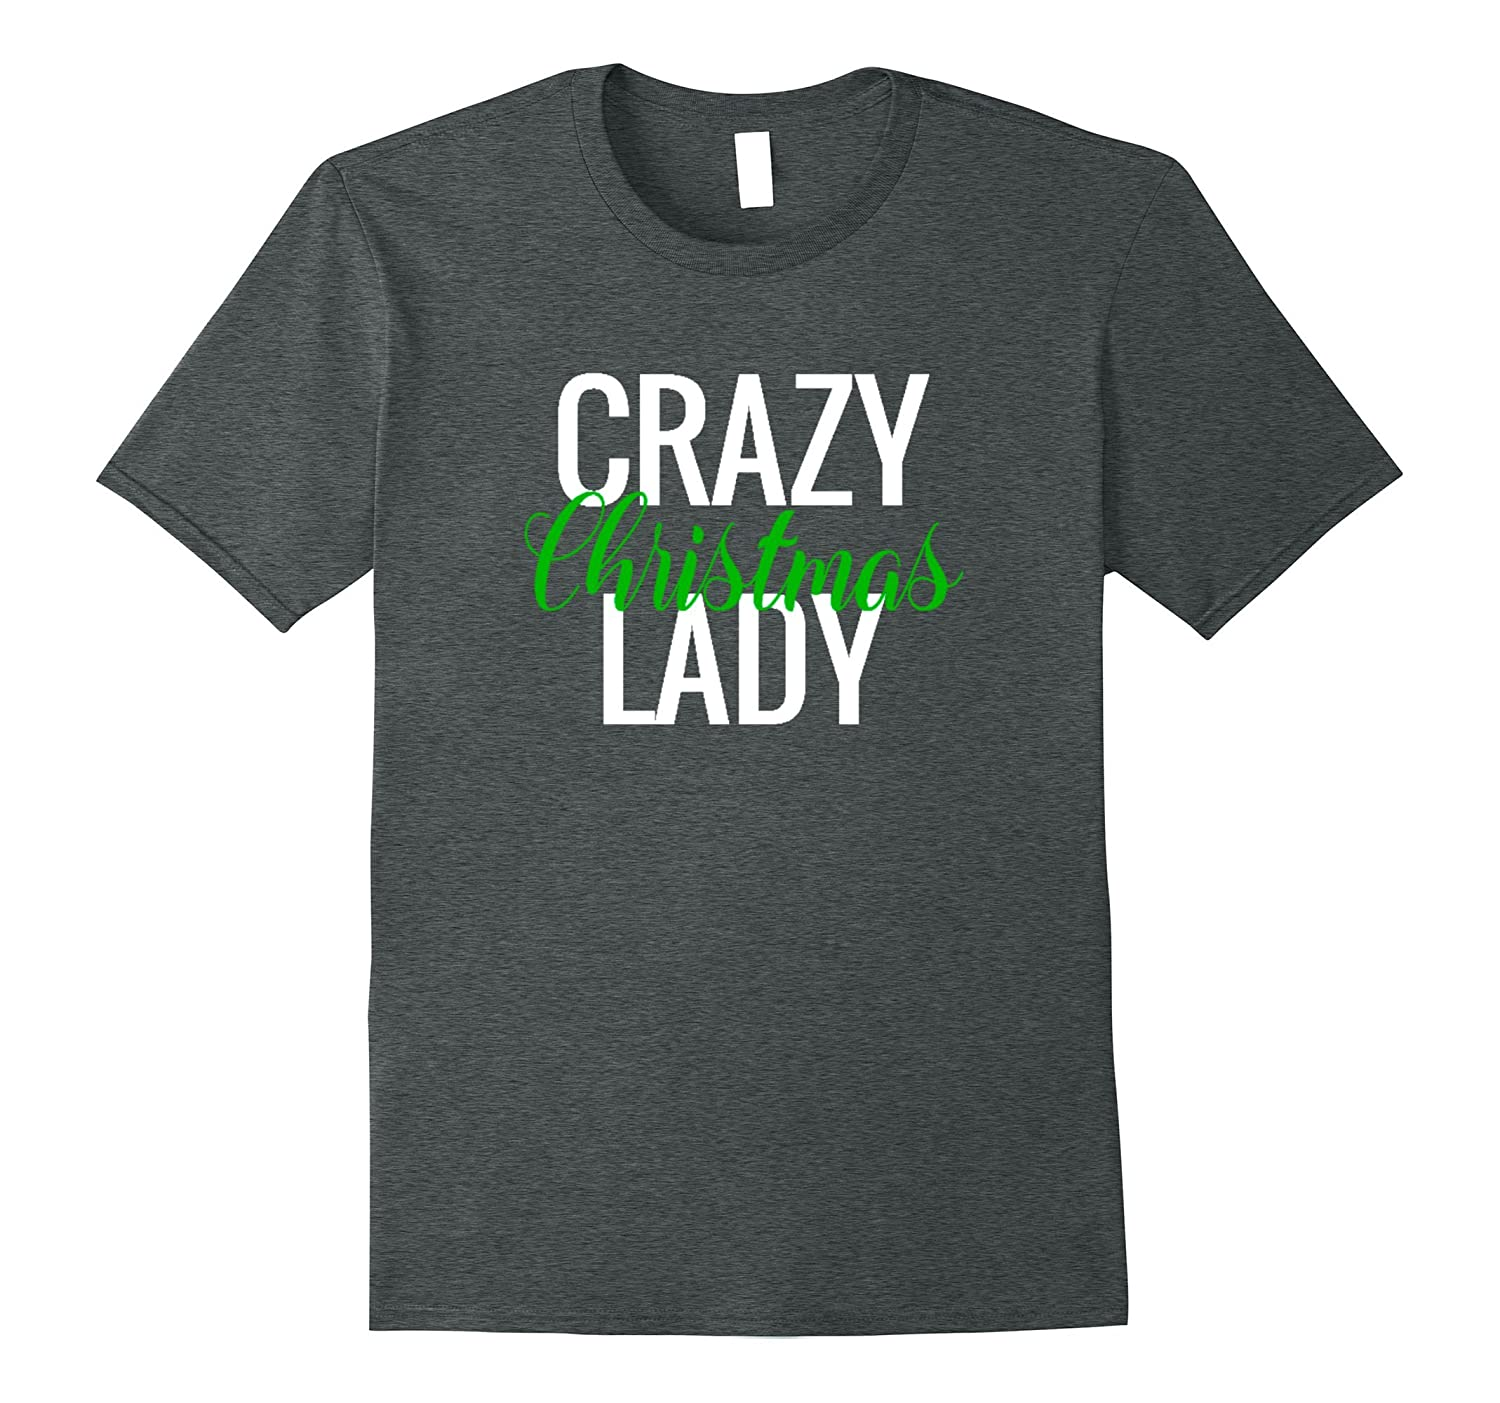 Crazy Christmas Lady Shirt Ladies Funny Xmas Print Tee Top-Rose